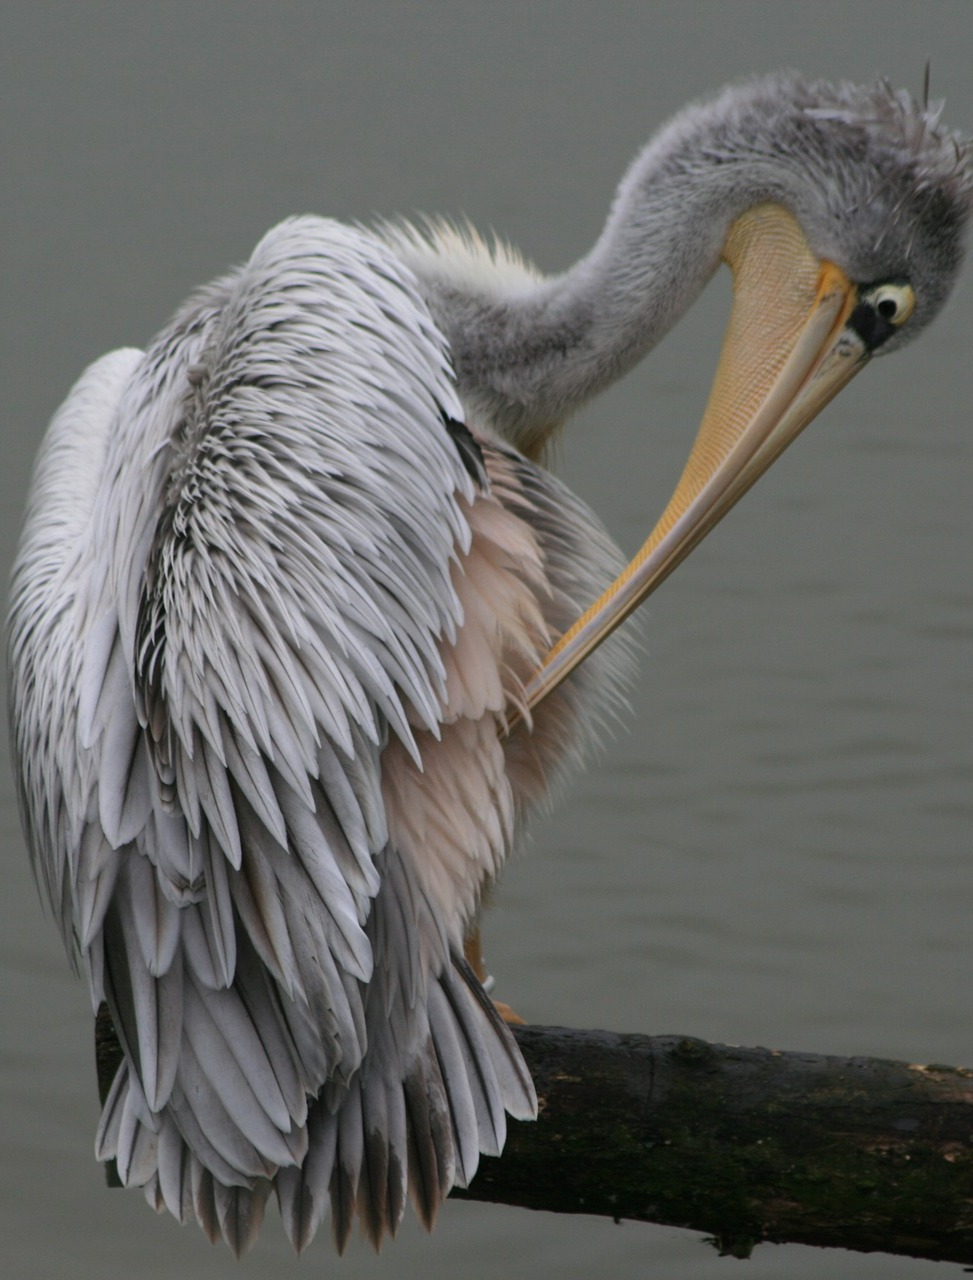 Pelican preening after a full bath.